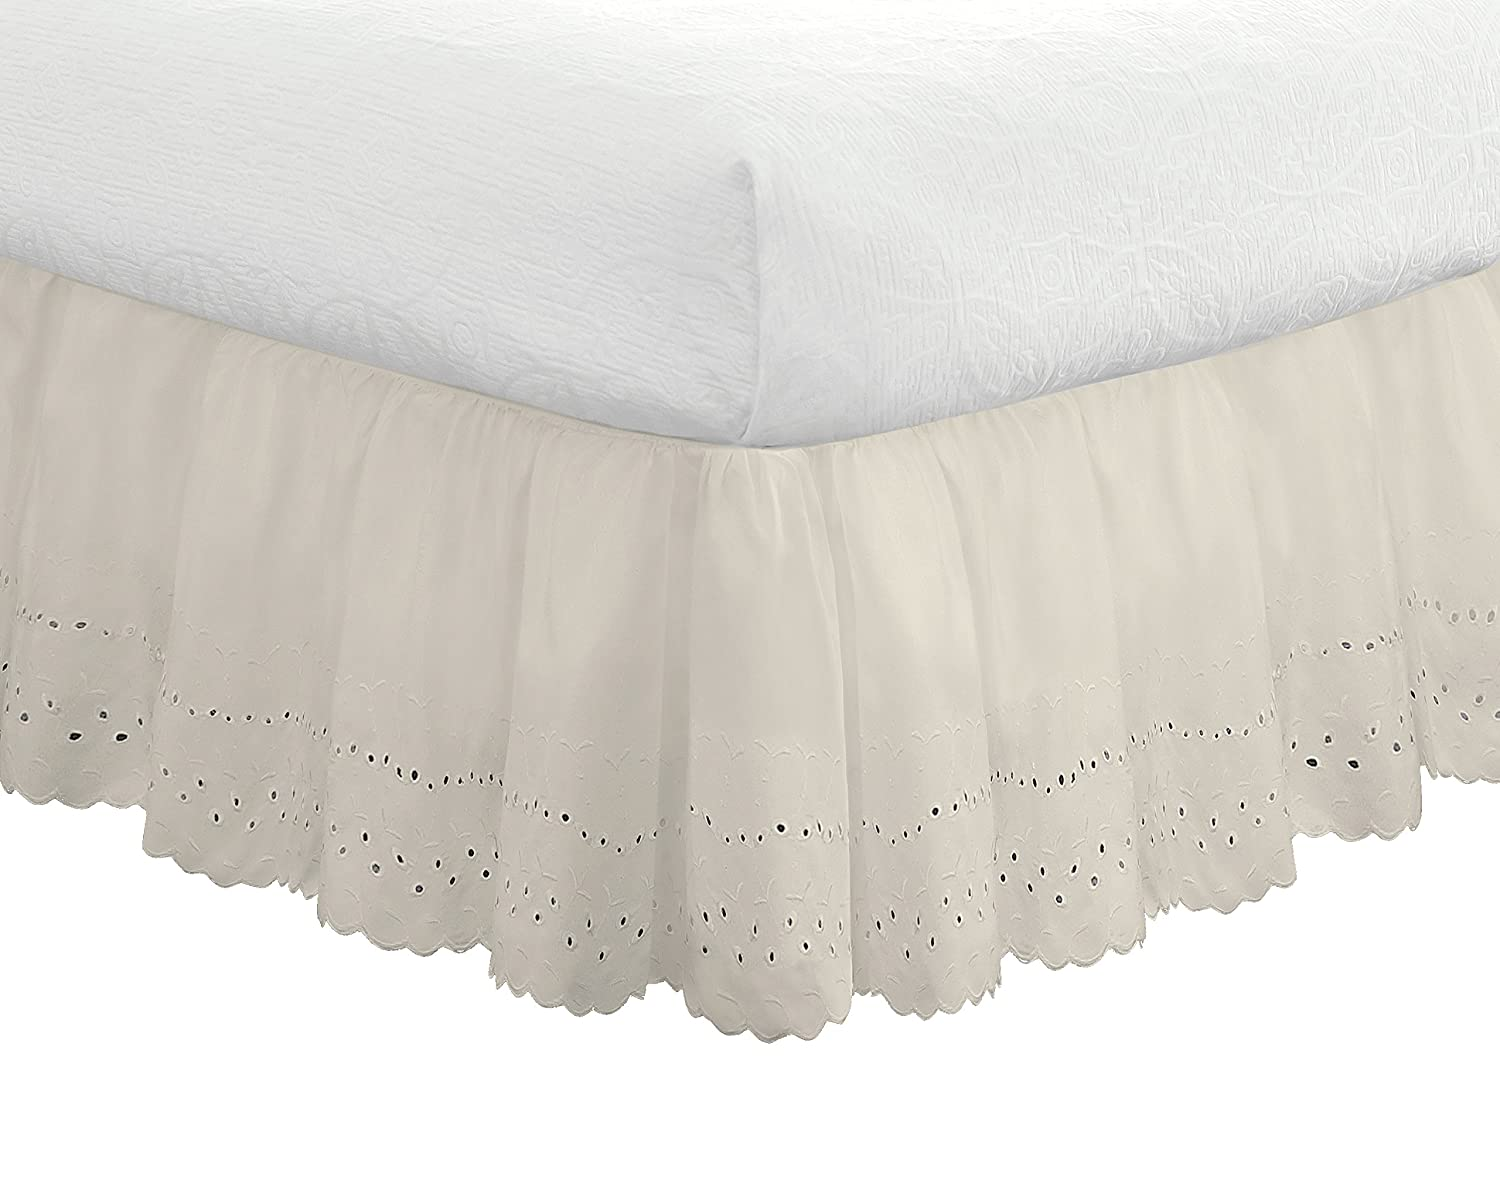 "Eyelet Ruffled Bedskirt – Ruffled Bedding with Gathered Styling –14"" Drop, Twin, White Levinsohn Textile FRE30014WHIT01"